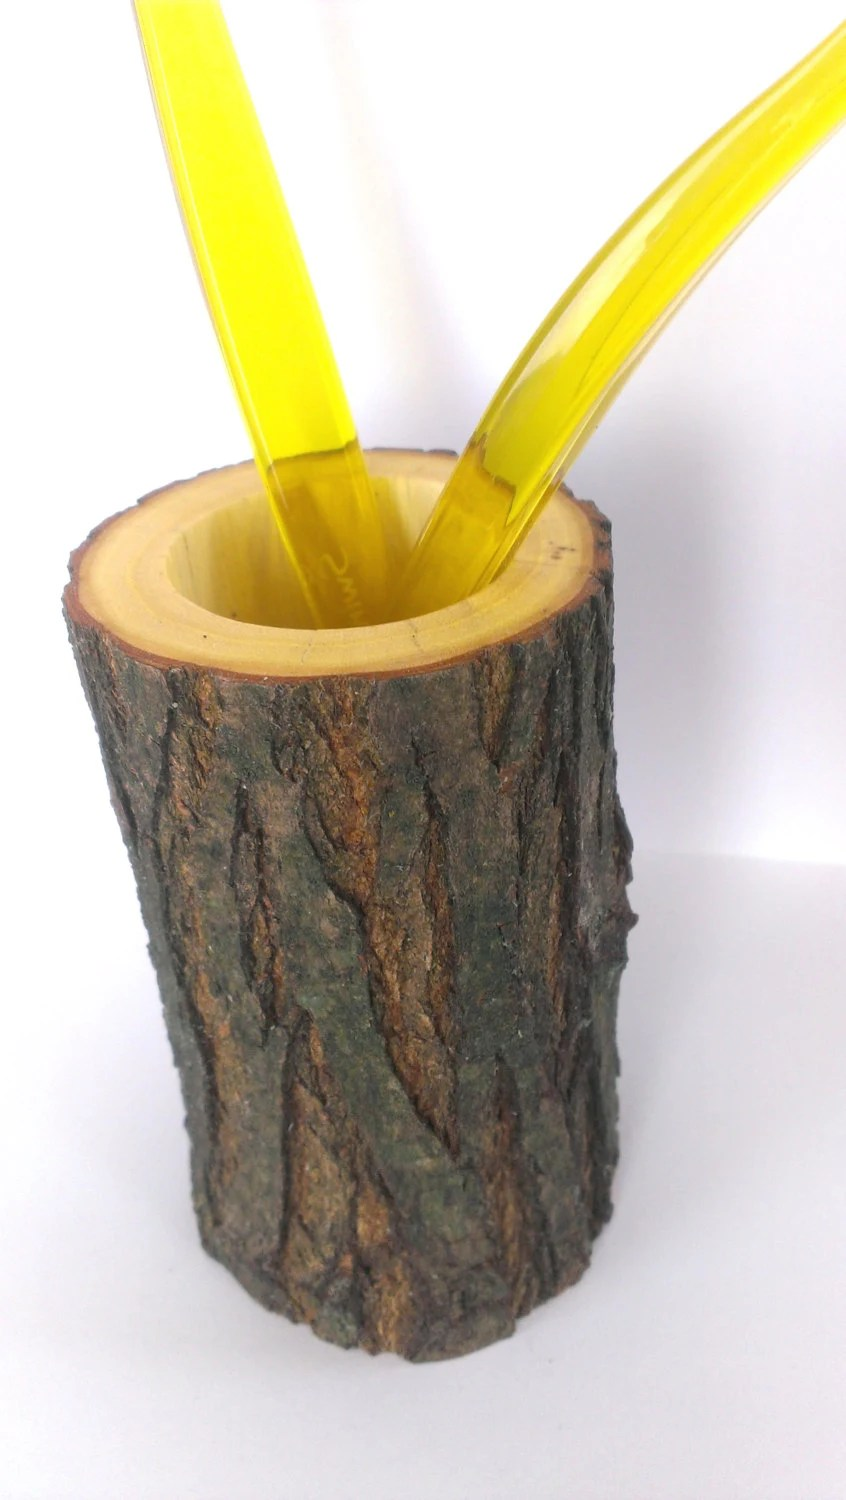 Toothbrush Holder Tree Rustic Bathroom Decor Wooden by ... on Decorative Sconces Don't Need Electric Toothbrush id=37647